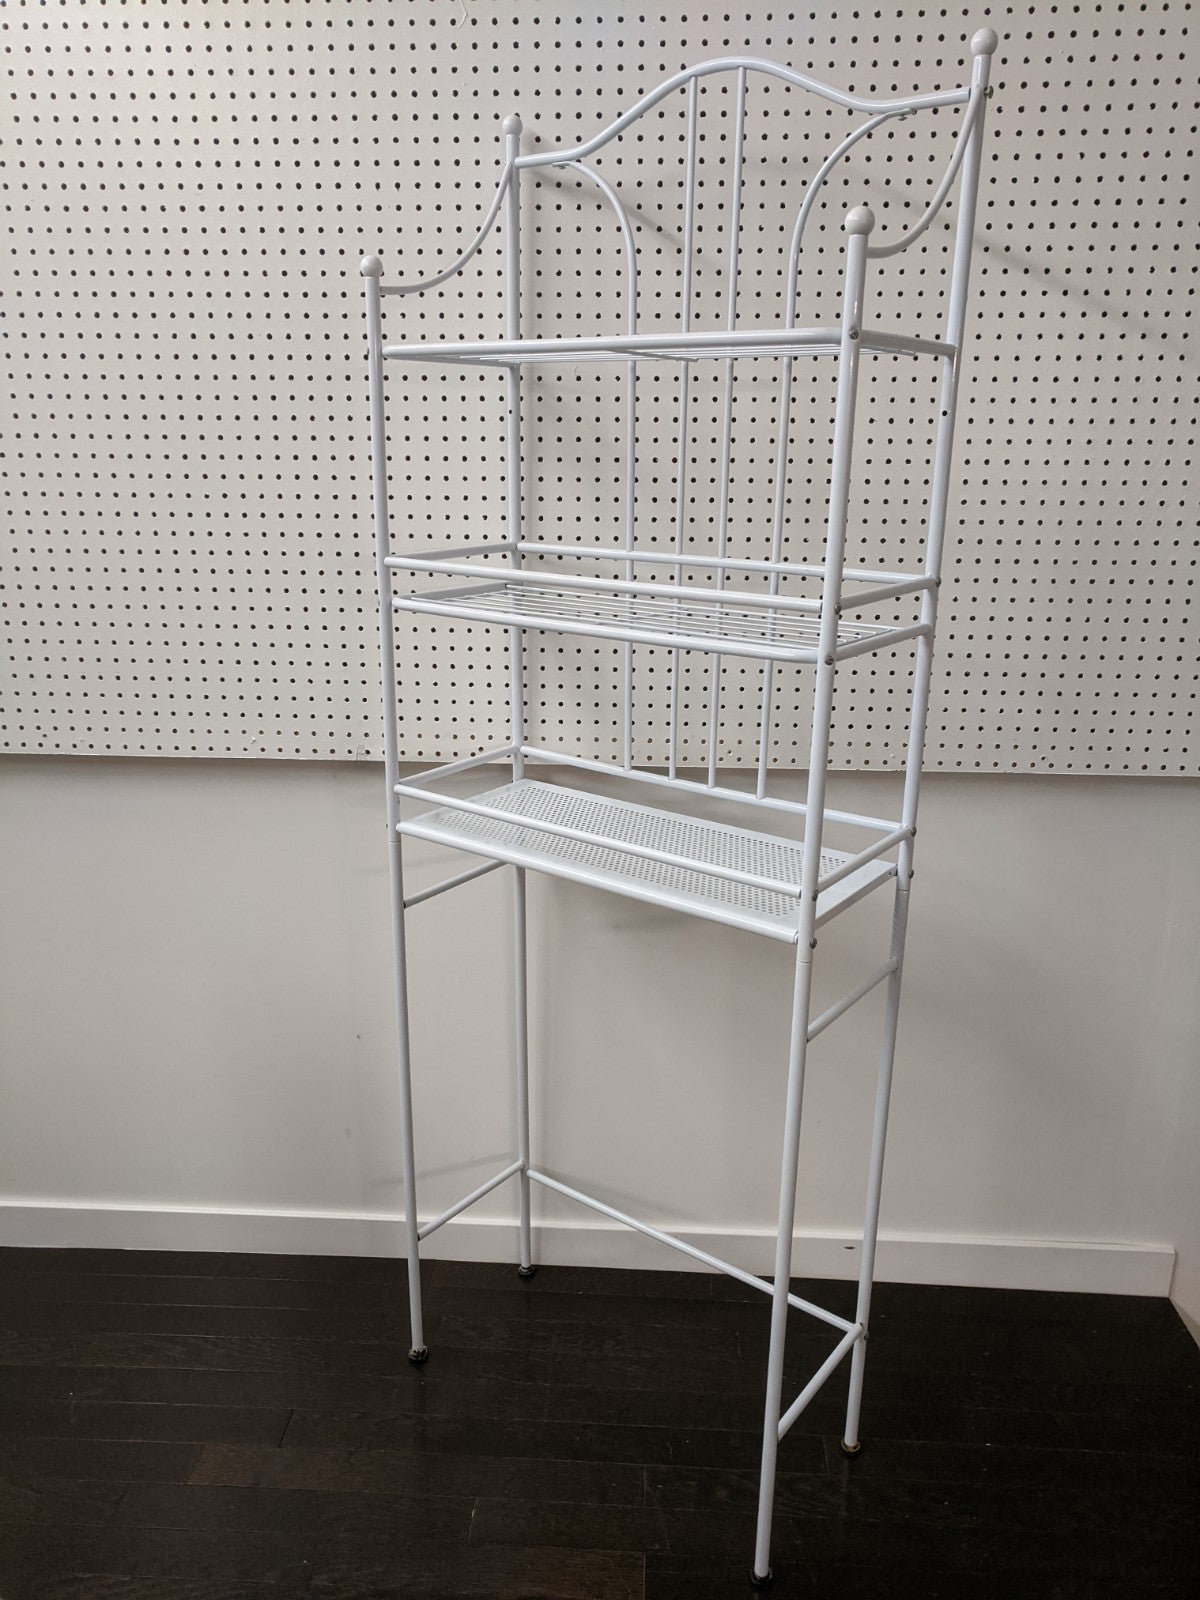 White Bathroom Shelf